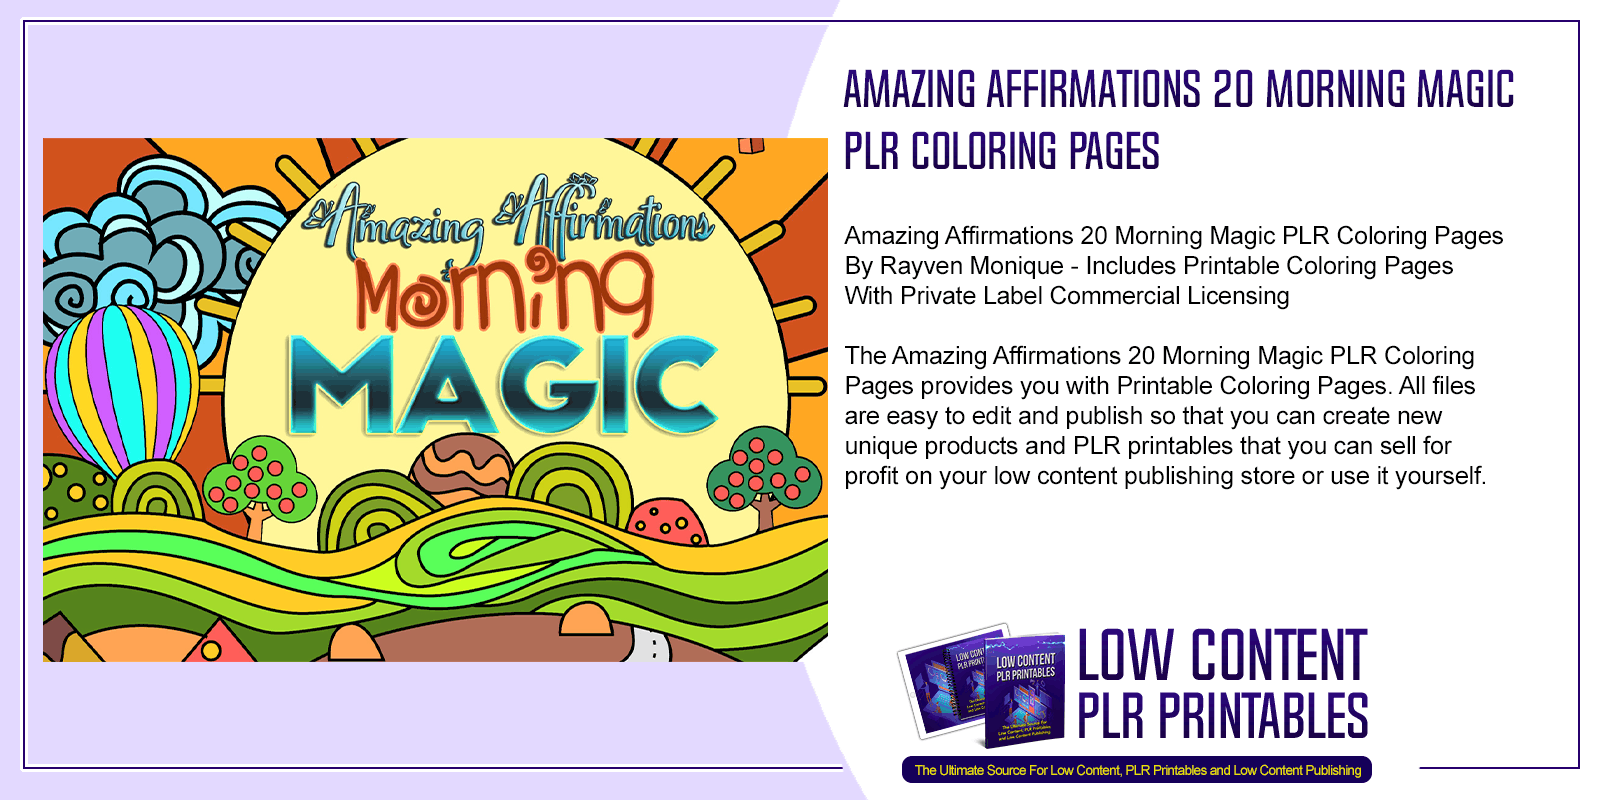 Amazing Affirmations 20 Morning Magic PLR Coloring Pages